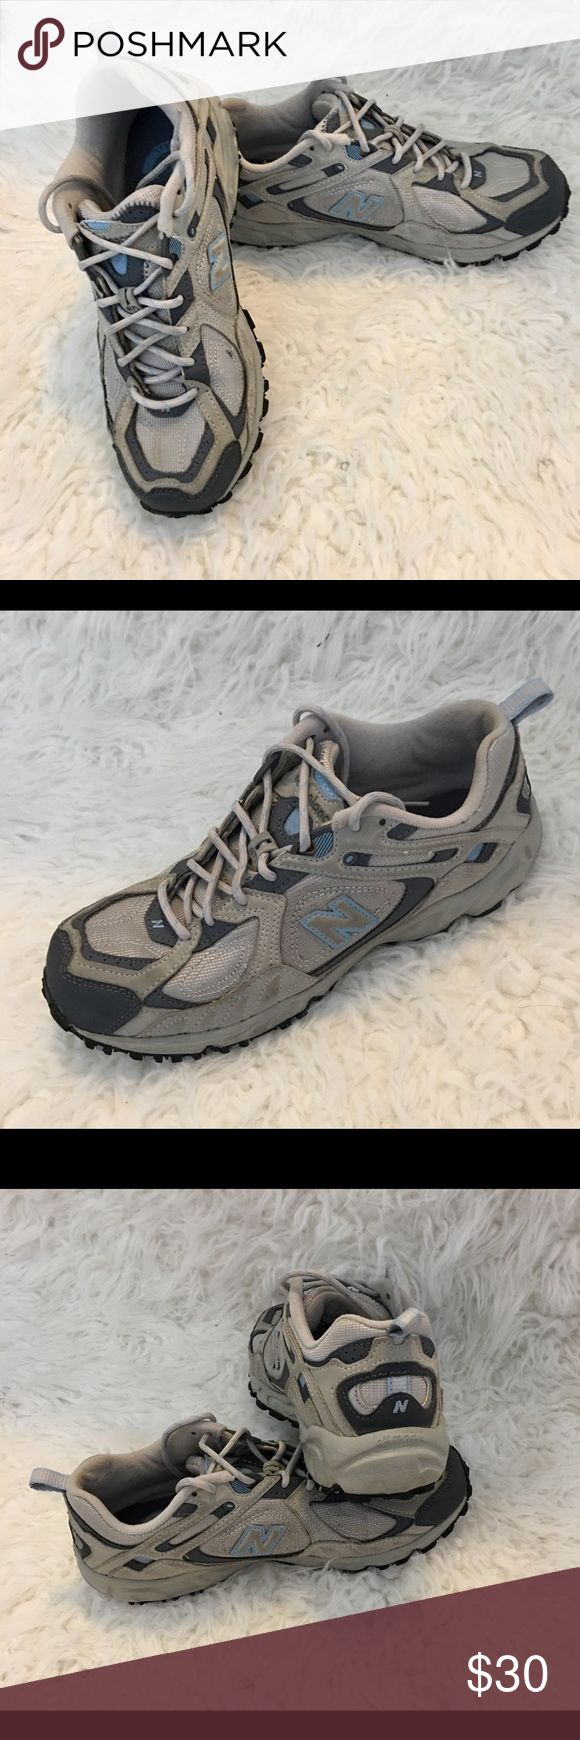 New Balance 471 All Terrain Trail Running Shoes New Balance All Terrain Sneaker - Worn a few times on trails - still in great condition, not even broken in. Original box is included and is in excellent condition. Full tread New Balance Shoes Sneakers